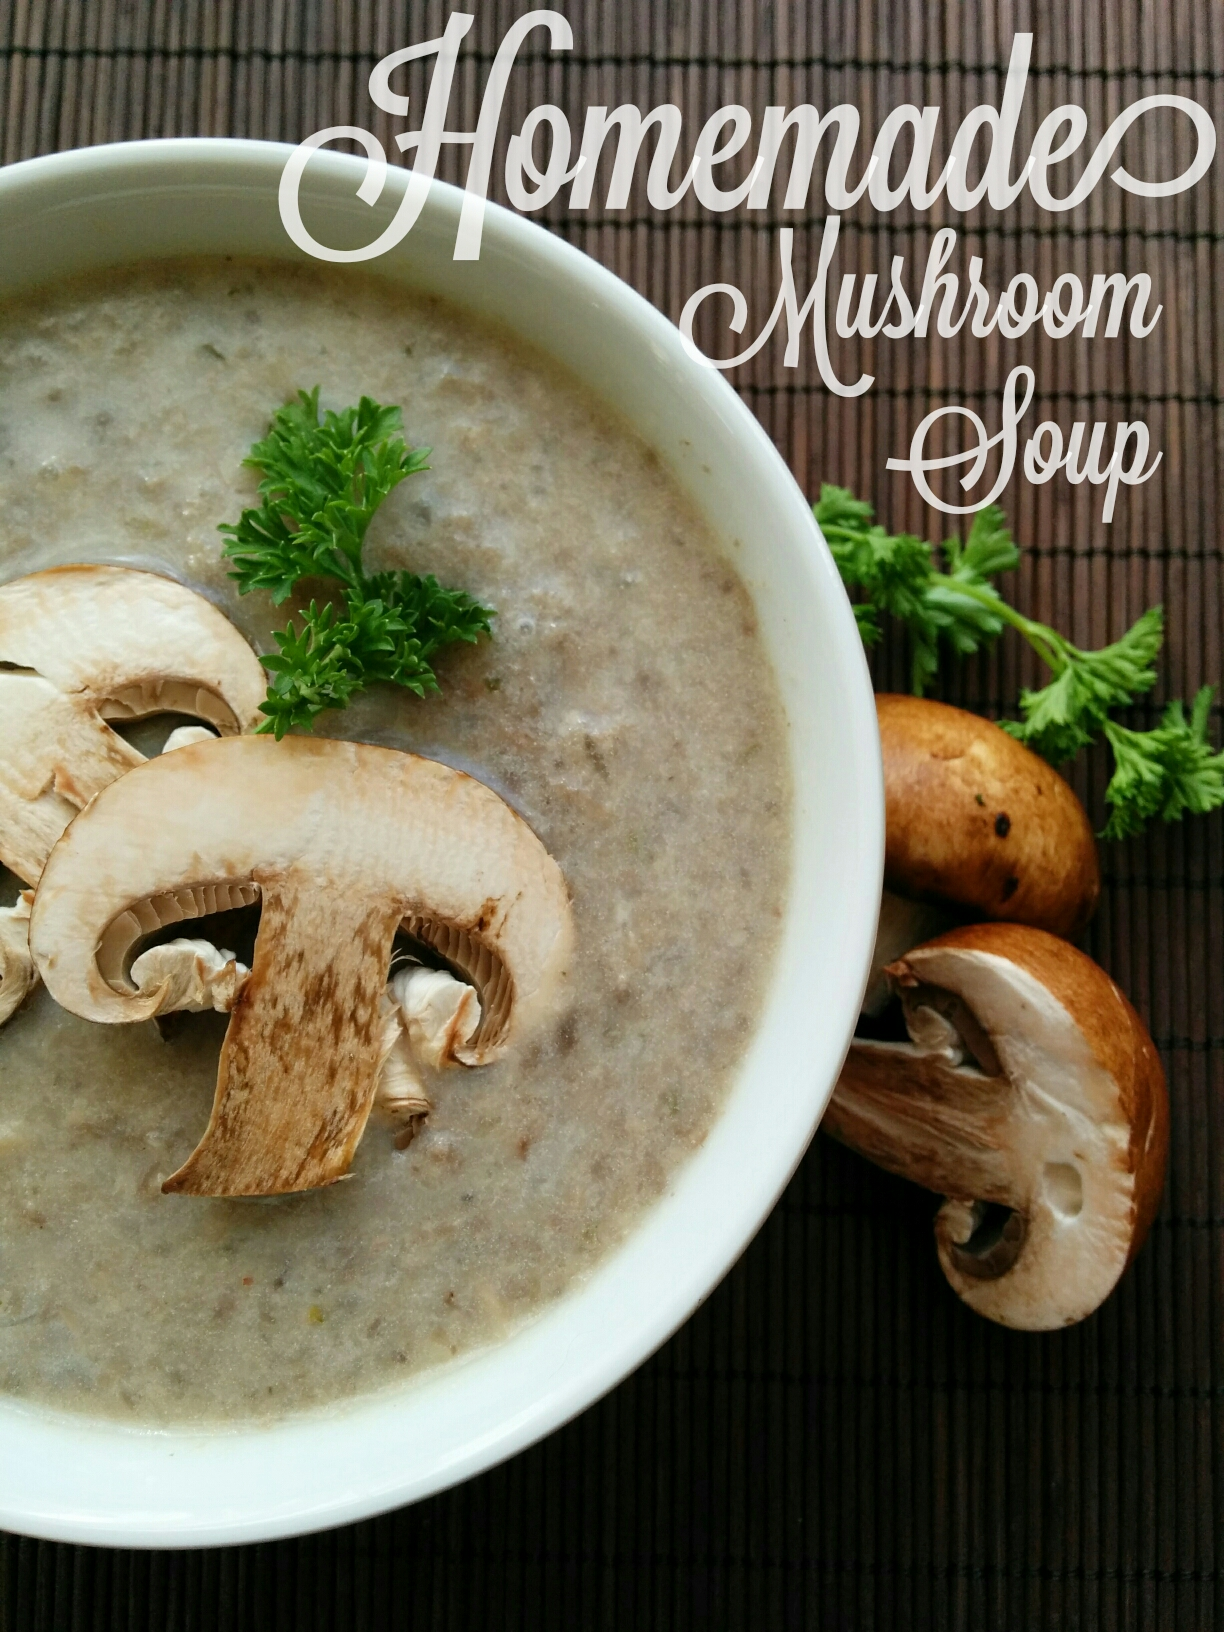 In The Dekker Home We Like To Kick The Season Off With A Big Pot Of Homemade Mushroom Soup We Make This Tasty Fall Favorite Often Because It S